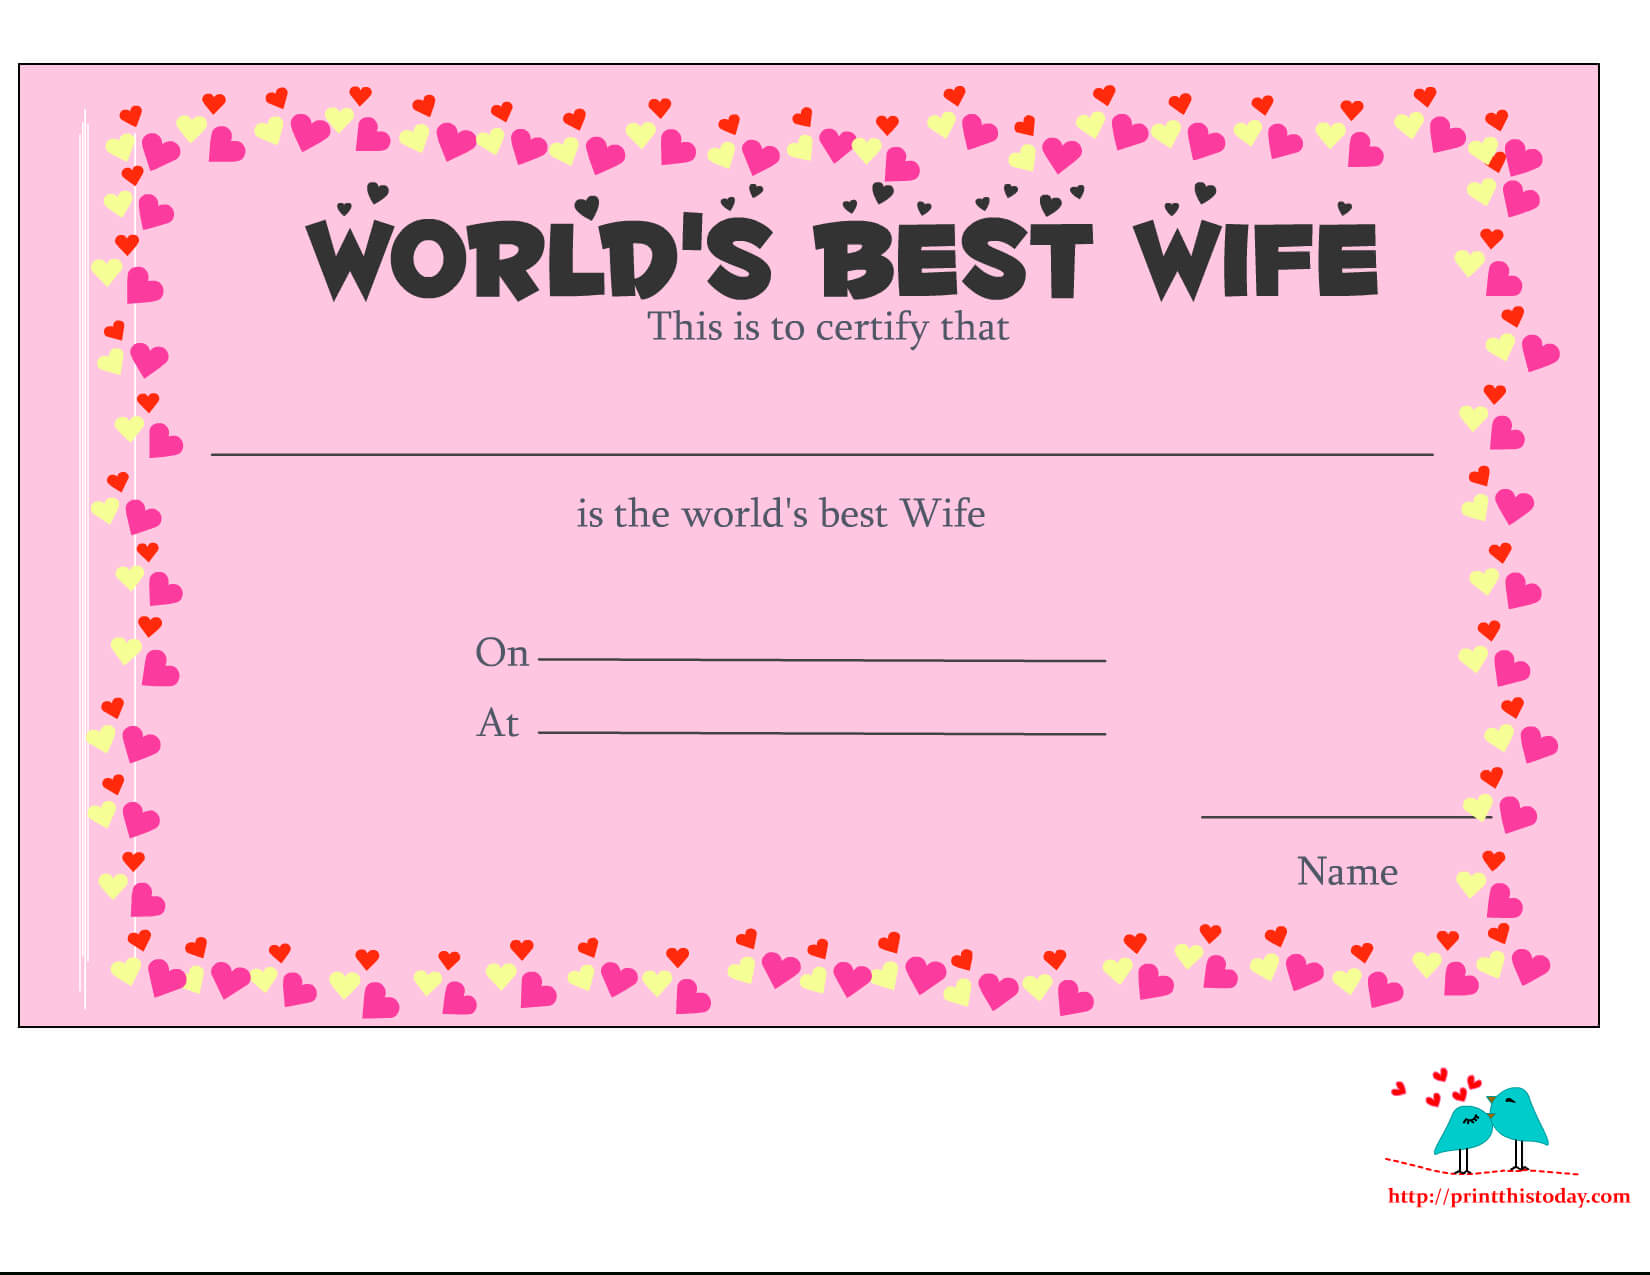 Free Printable World's Best Wife Certificates intended for Love Certificate Templates